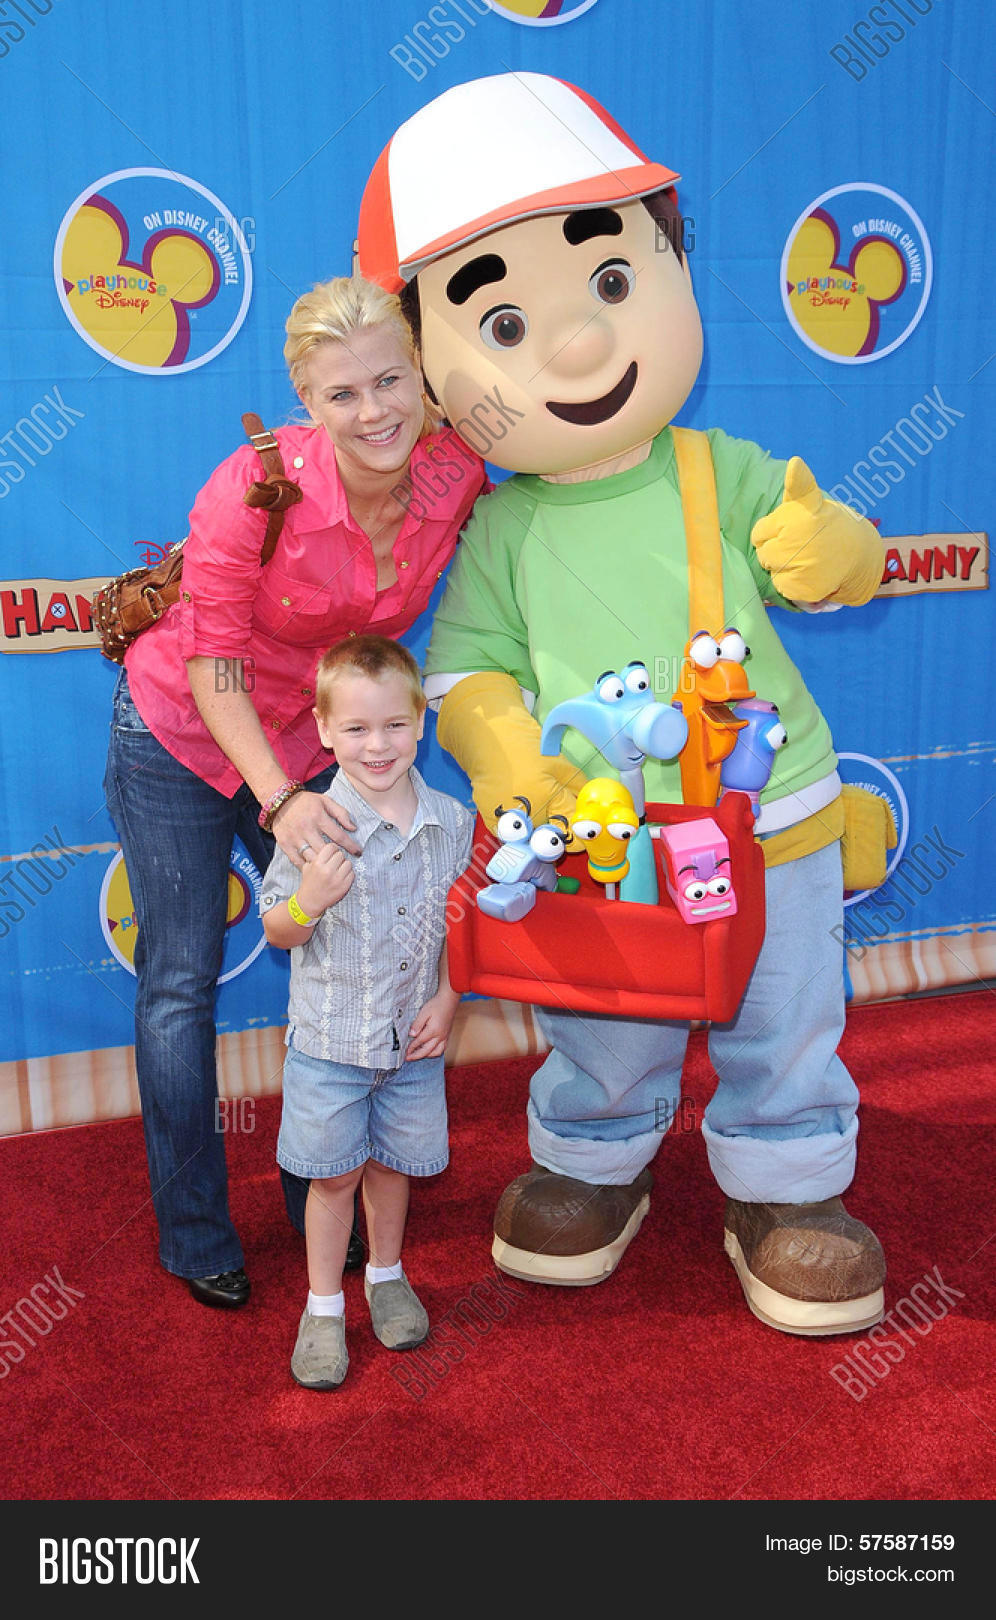 Alison Sweeney Family Pictures alison sweeney family image & photo (free trial)   bigstock